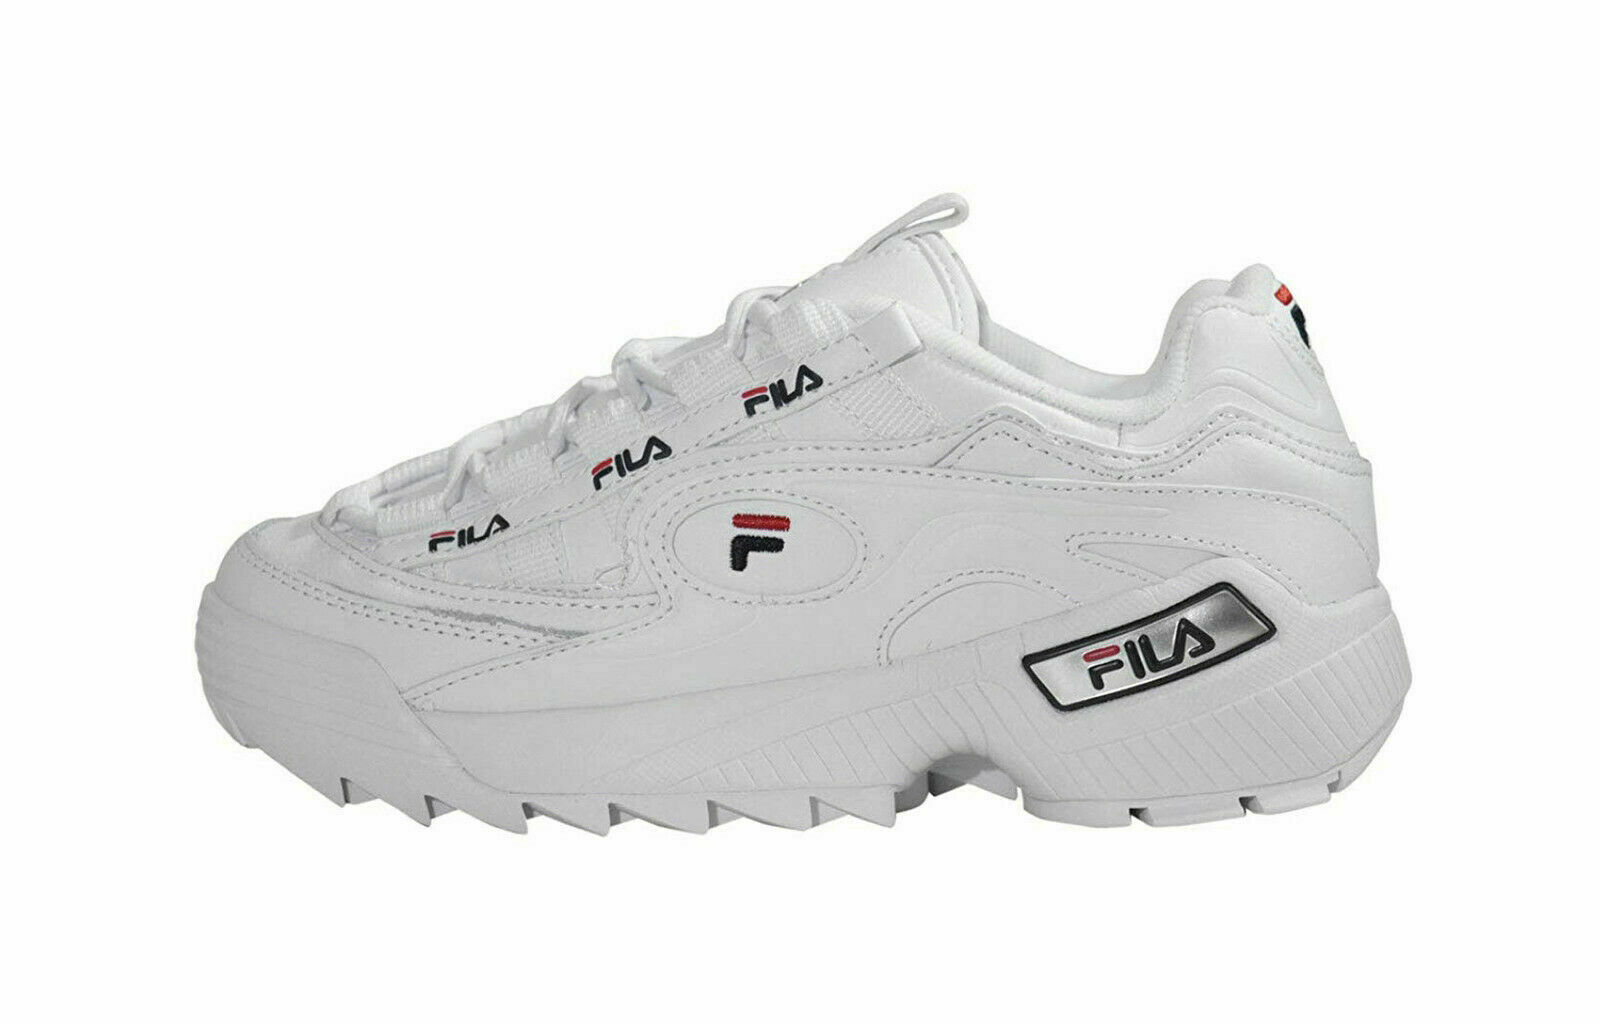 Primary image for Fila Women's D-Formation Sneakers 5CM00514-125 - White/Navy/Red